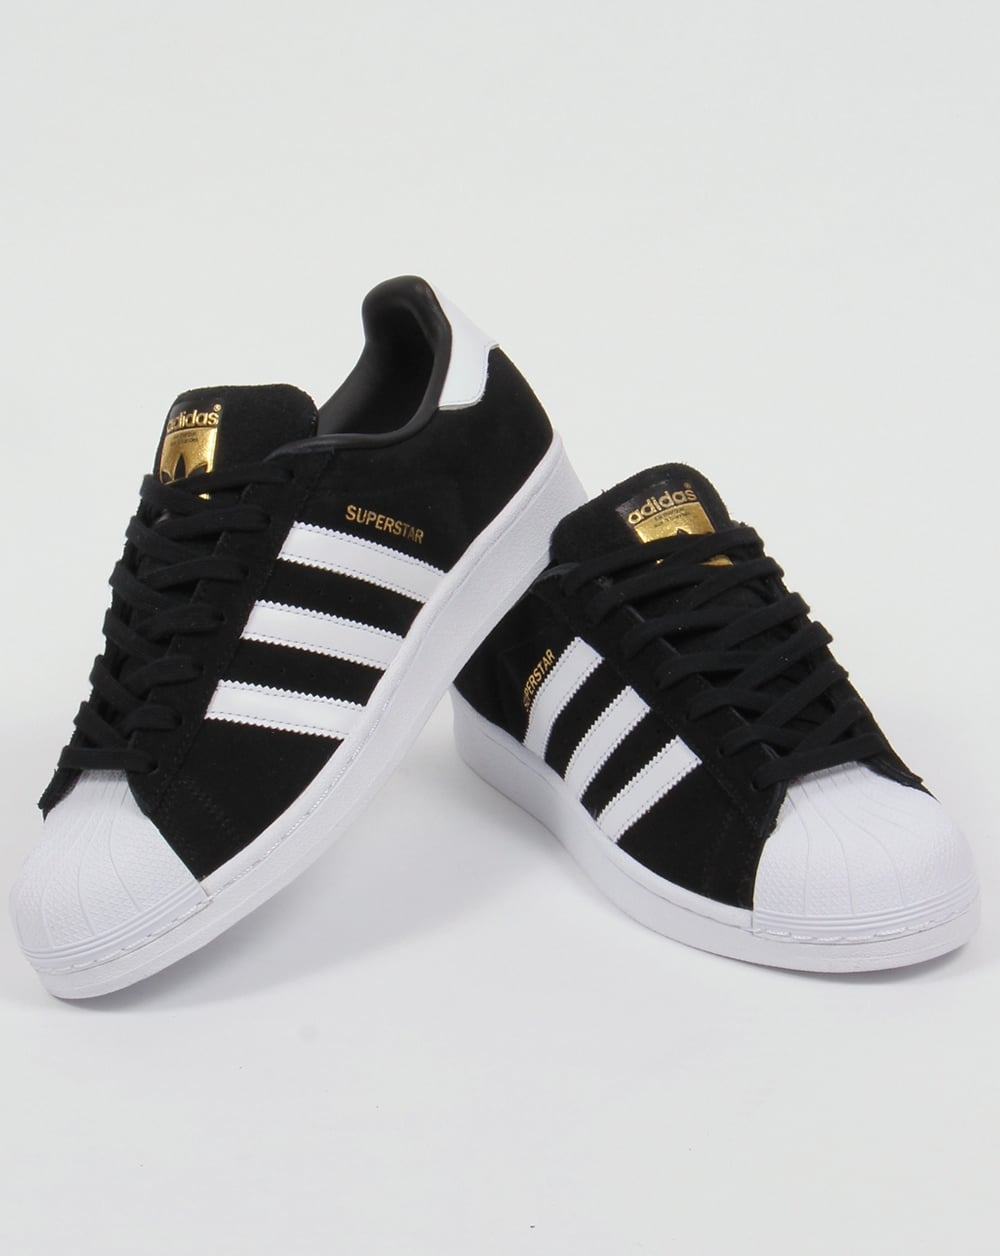 adidas Superstar 80s Retro Basketball Shoes White Black Chalk